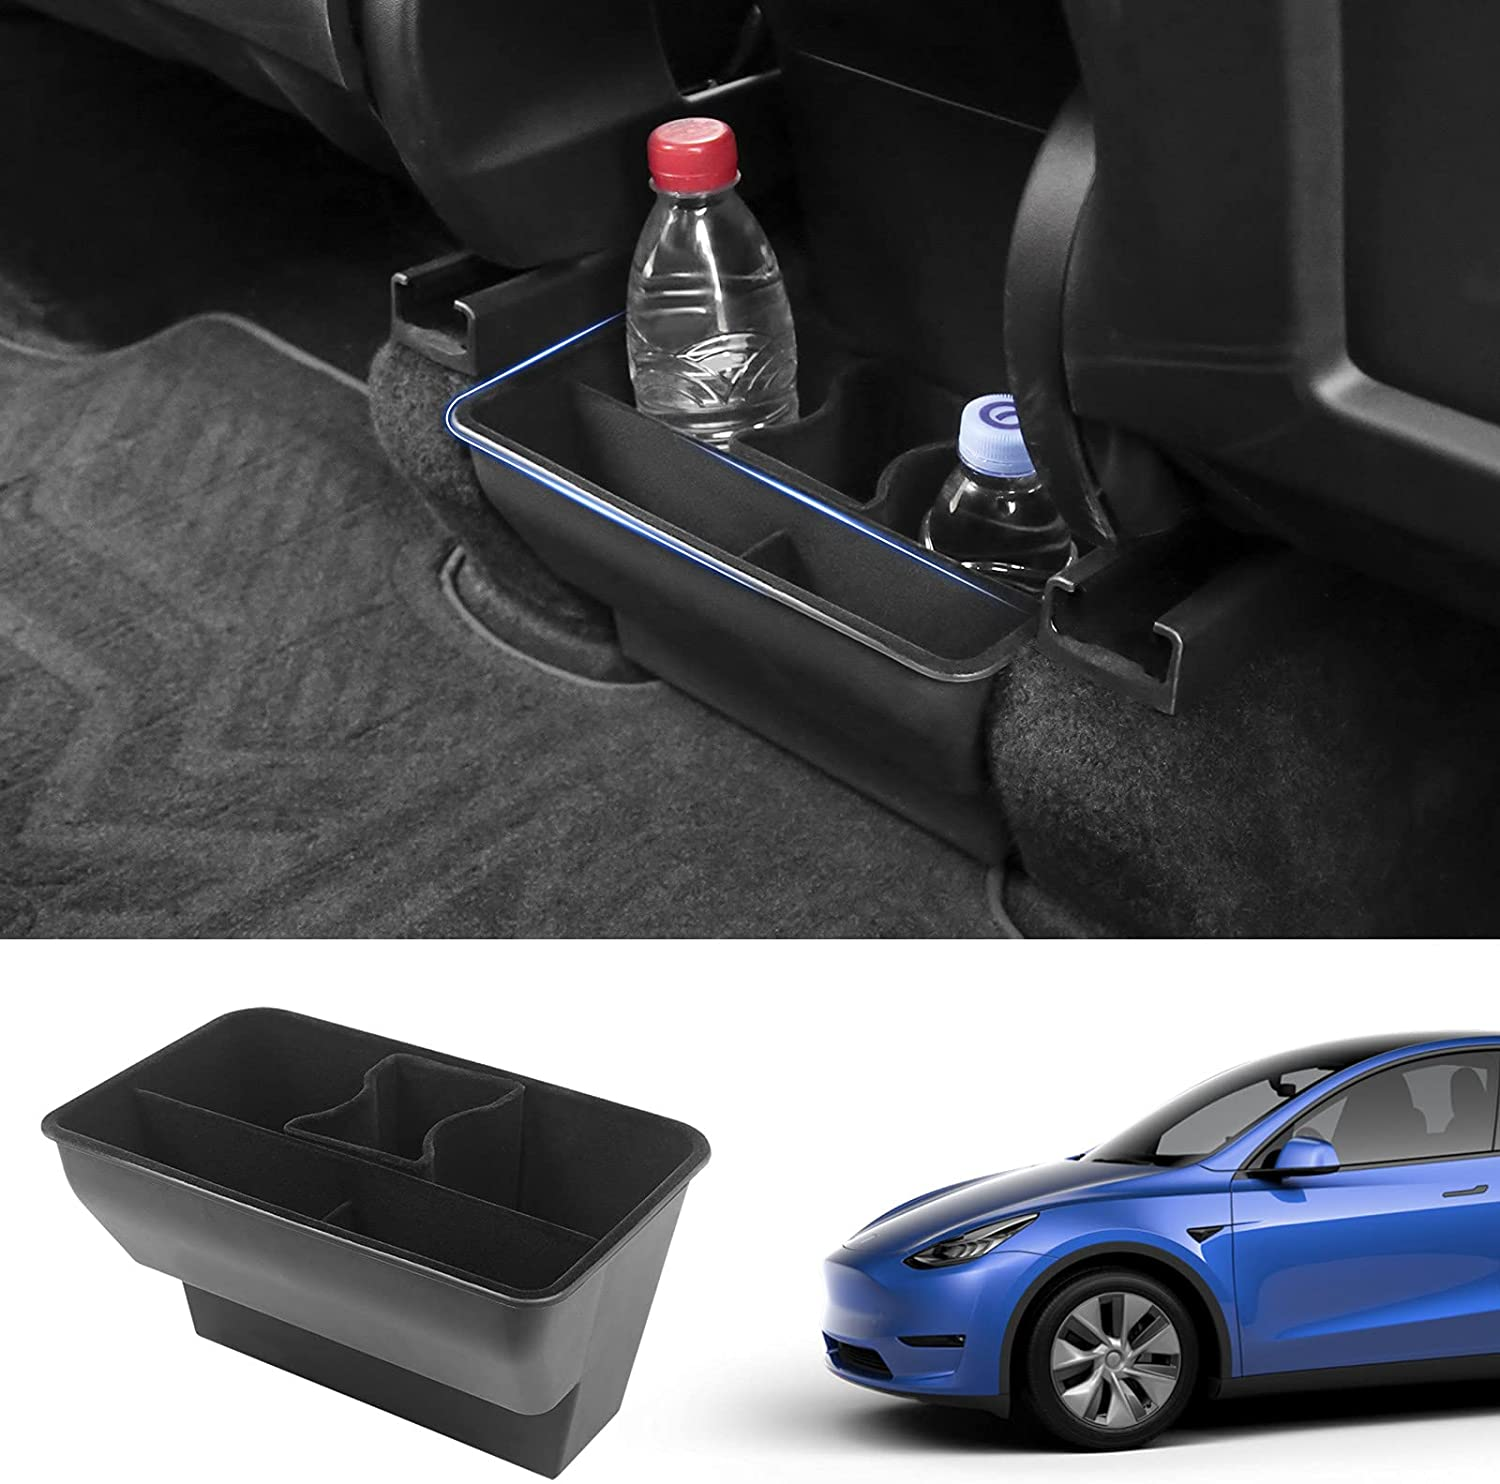 powoq High San Antonio Mall quality new Fit Tesla Model Y Storage Or Air Box Underseat Outlet Rear